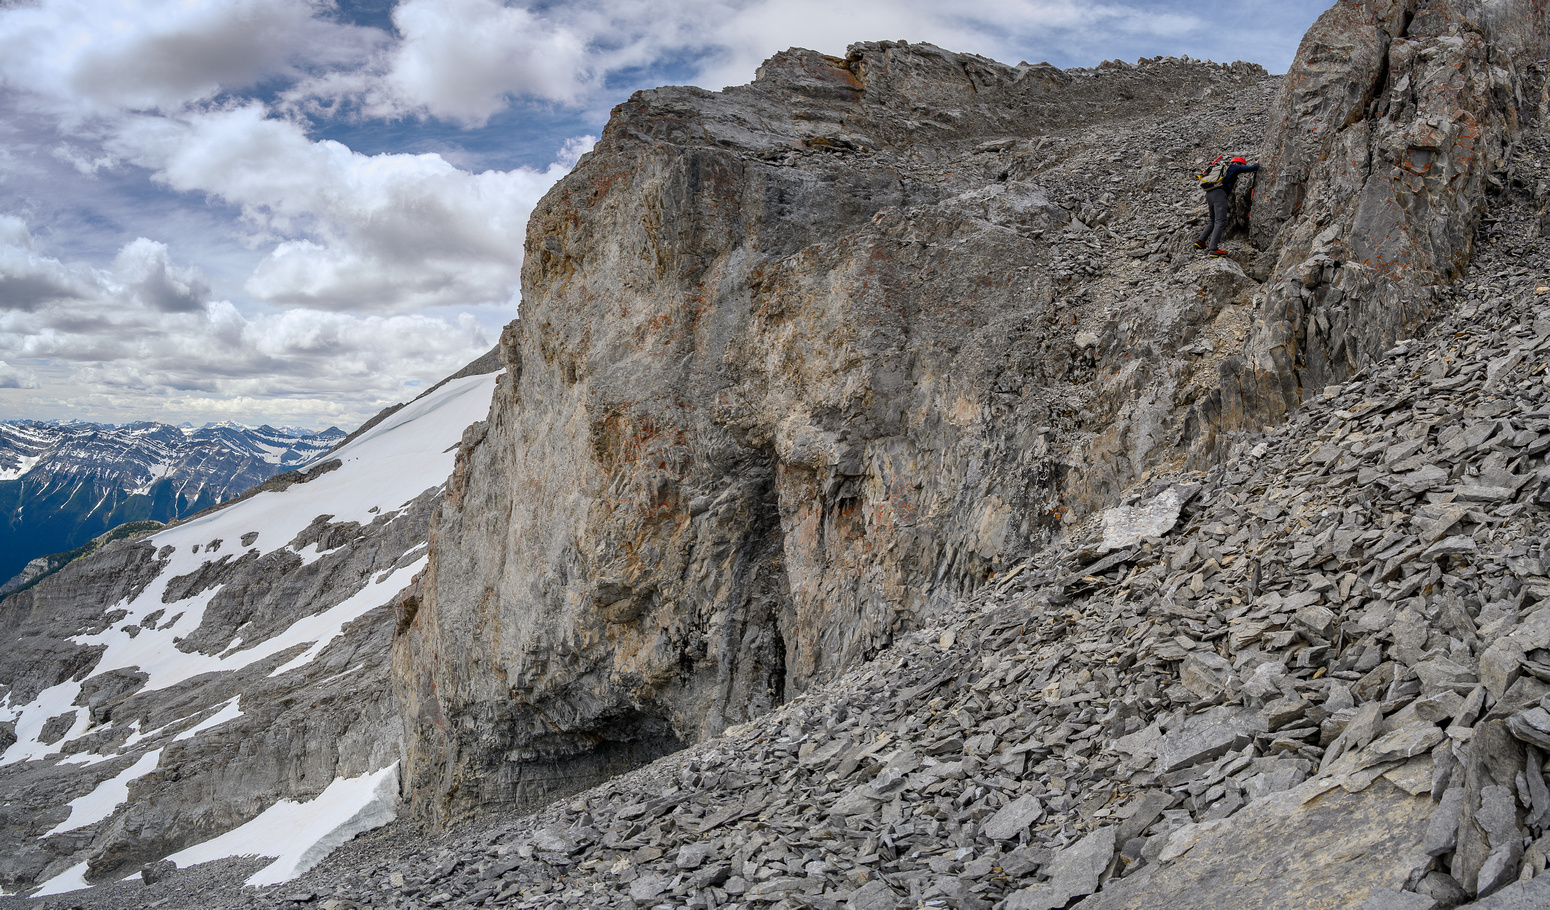 Descending the tricky (and loose) SE ridge.